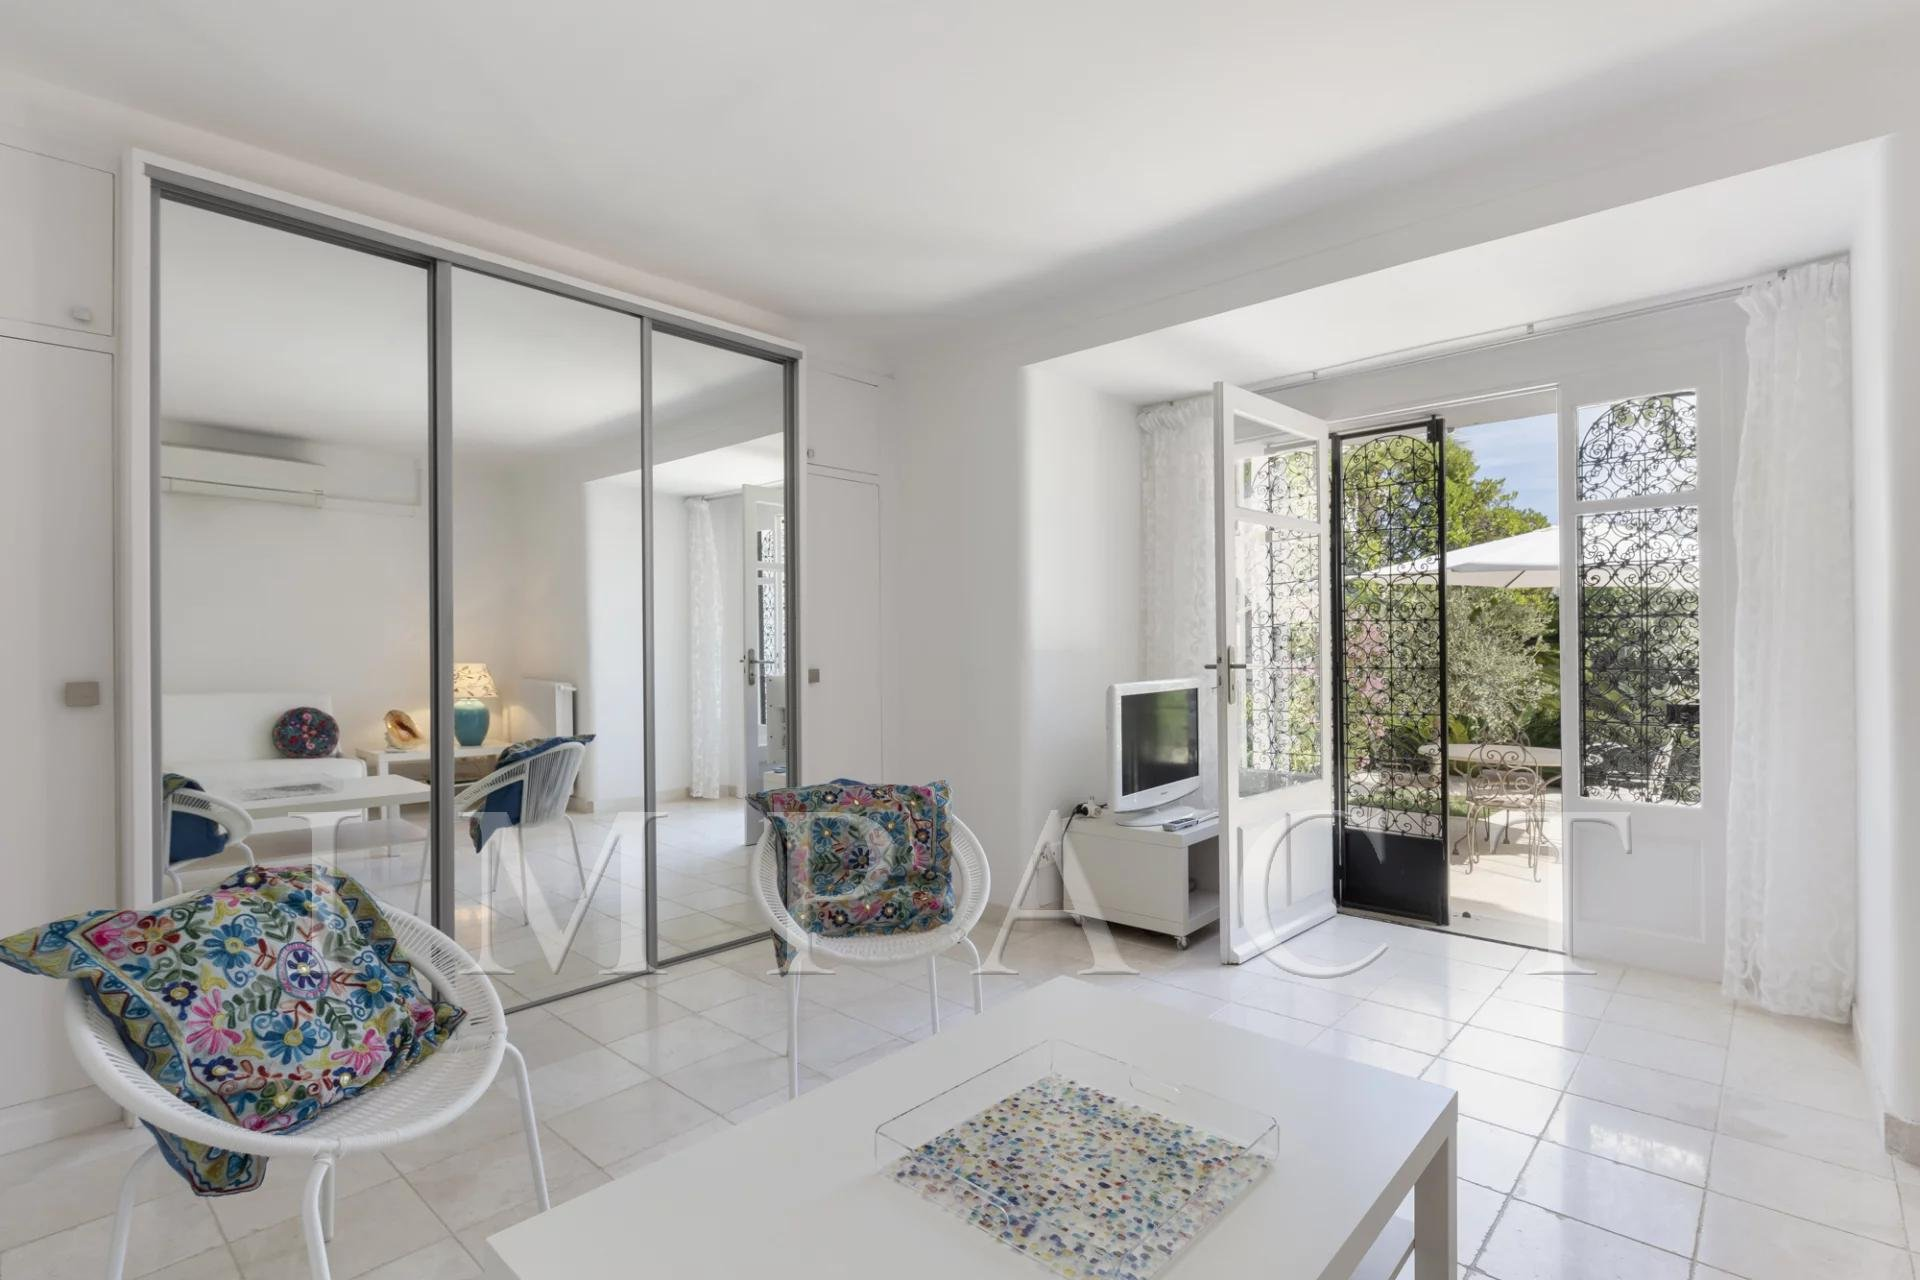 Fully renovated private mansion for sale - Cannes 10 min walk from the center